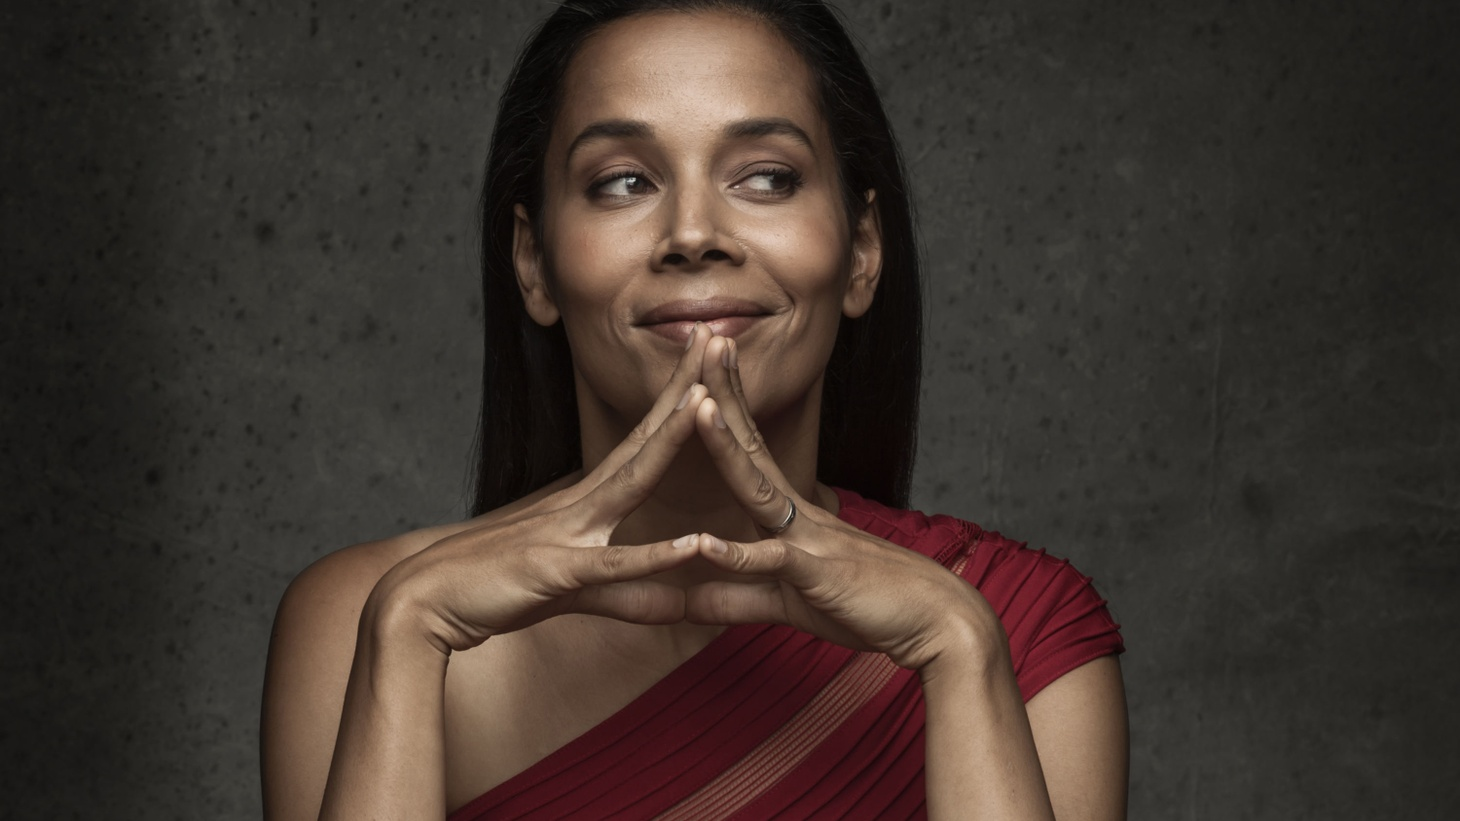 Founding member of the Carolina Chocolate Drops, singer/violinist/banjo player Rhiannon Giddens has participated in a number of intriguing projects over the past couple of years.This year she makes her solo debut with a collection of songs made famous by the likes of Patsy Cline, Dolly Parton and Nina Simone.